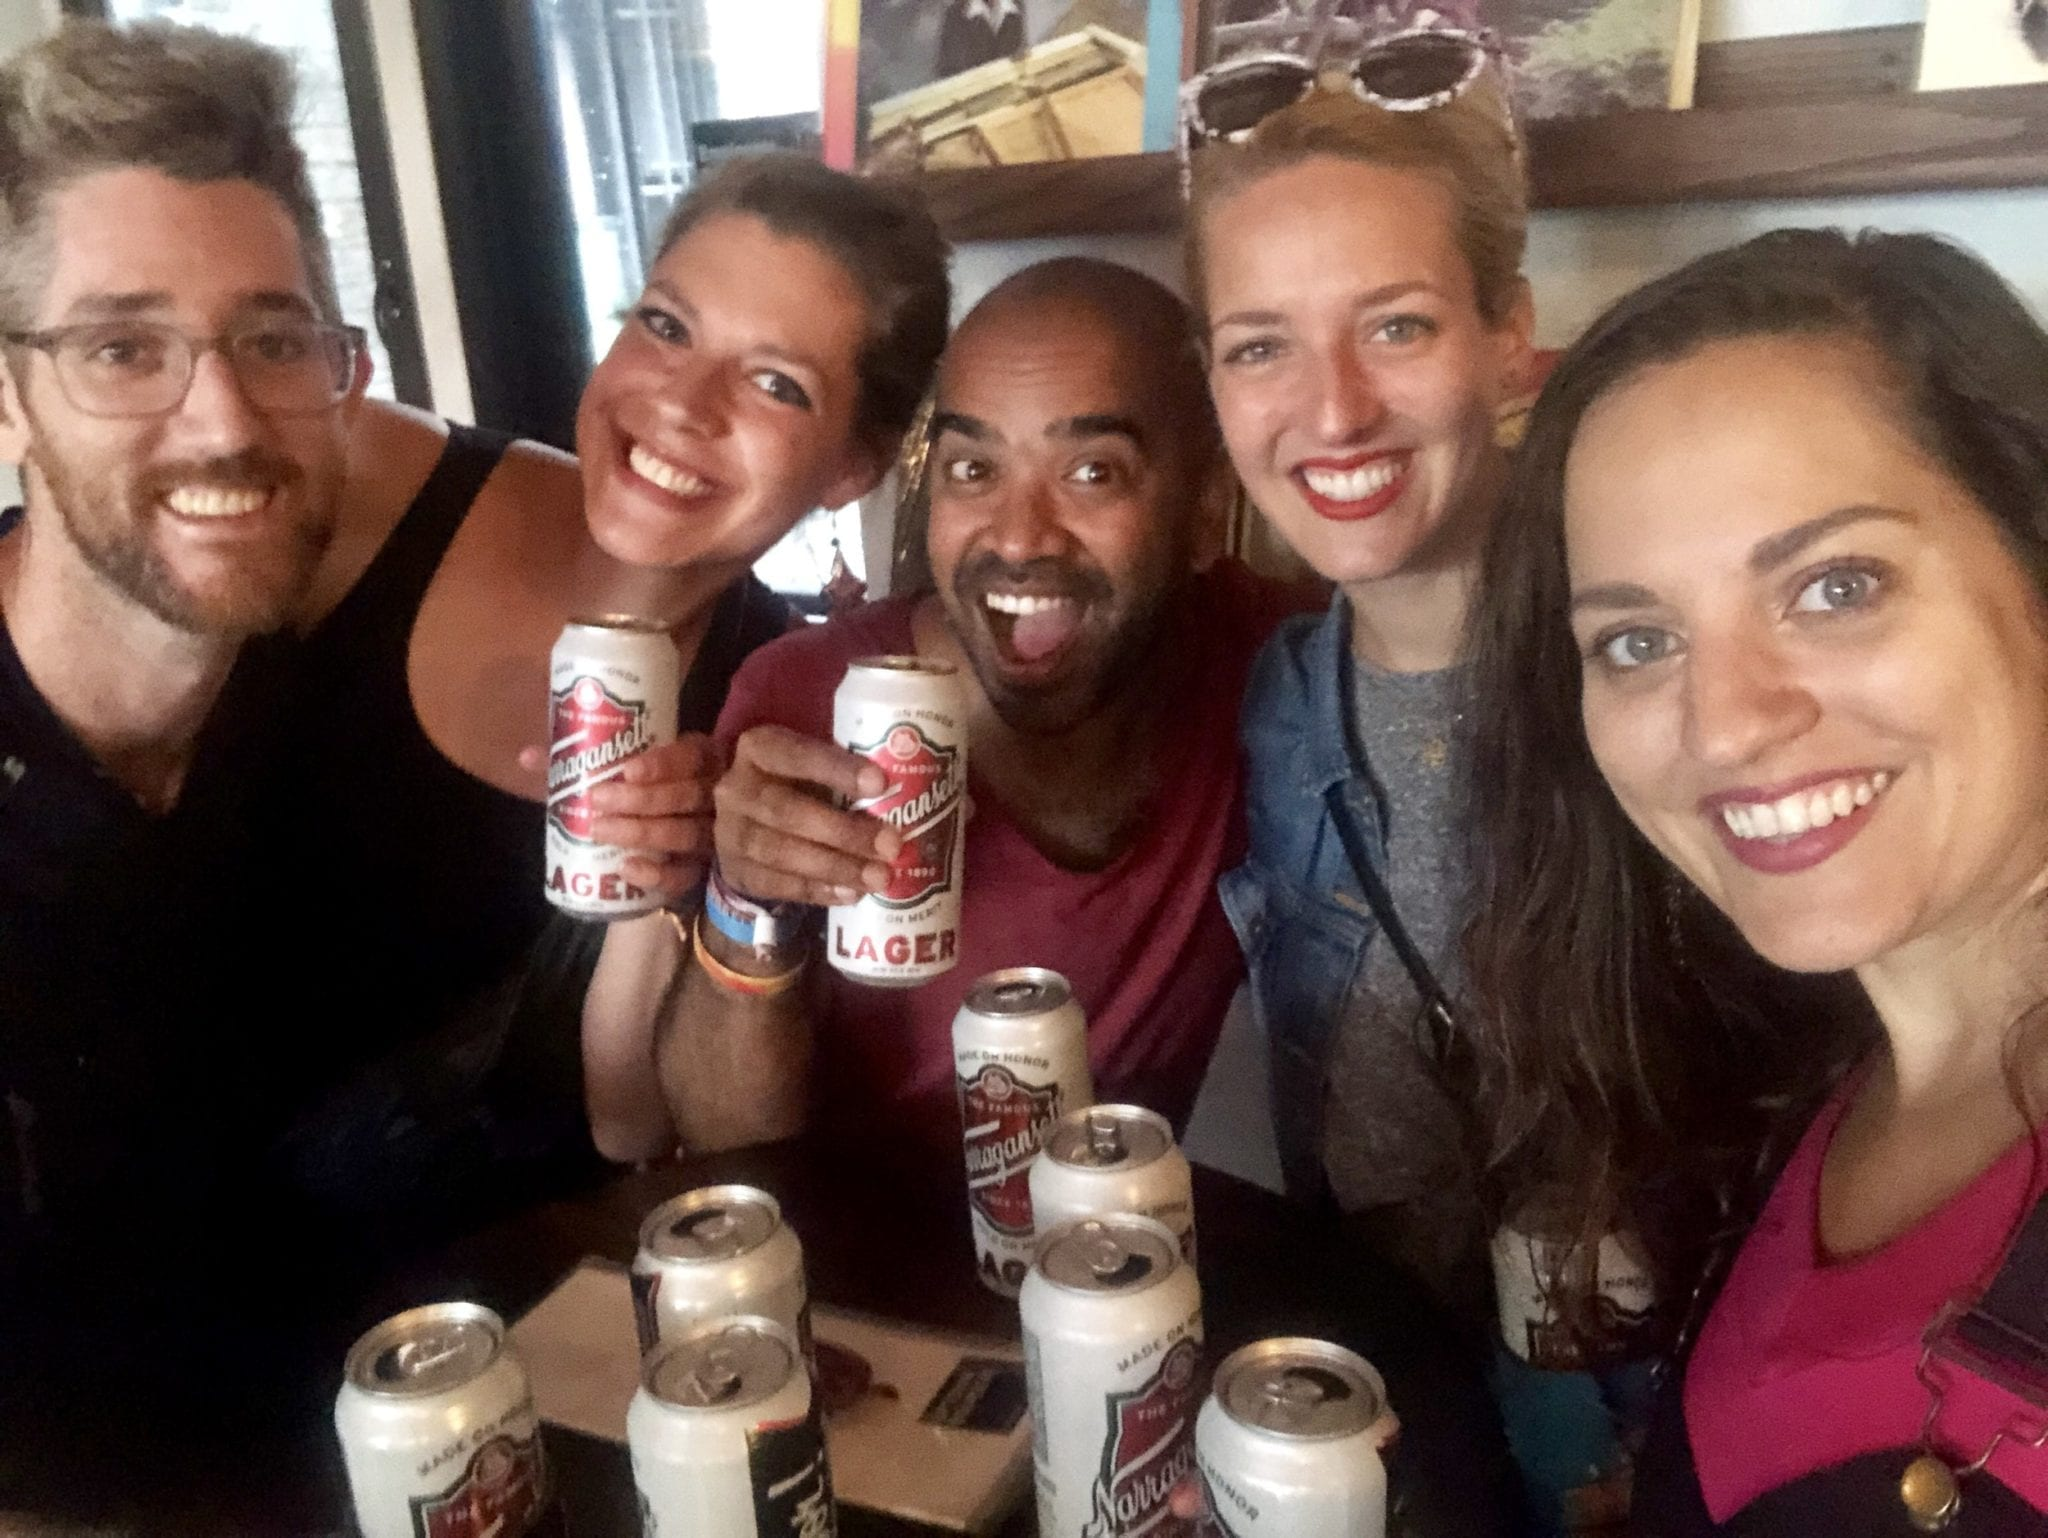 Group selfie: Kate with her friends Sabrina and Kash, her sister Sarah, and her sister's partner Matt, all around a bar table topped with twelve Narraganset tallboy beers.